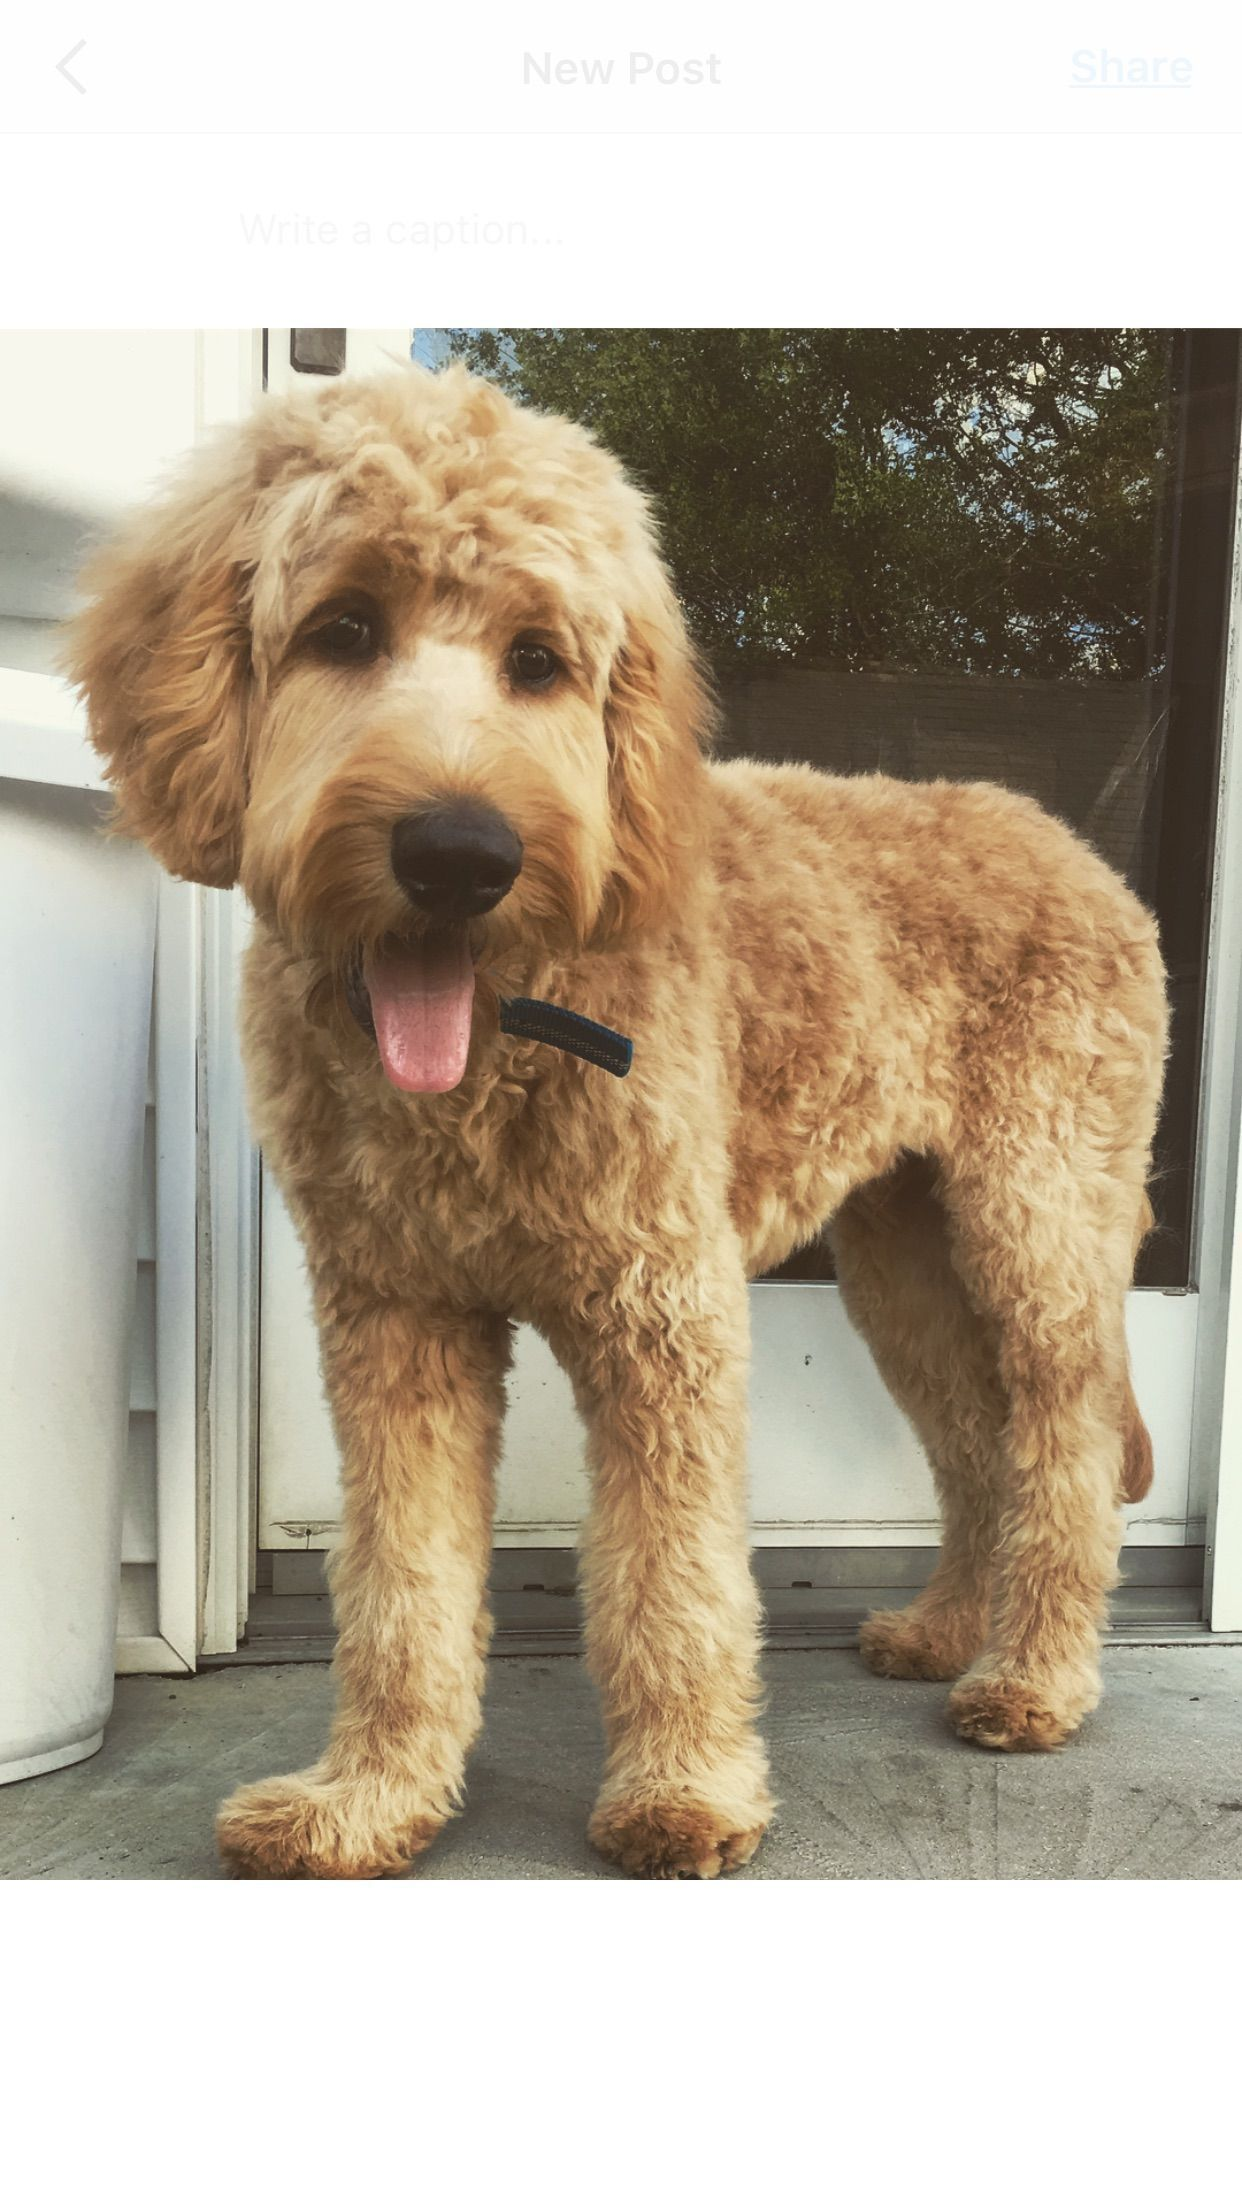 goldendoodle haircuts pets goldendoodle haircuts f1b image result for goldendoodle haircut before and after